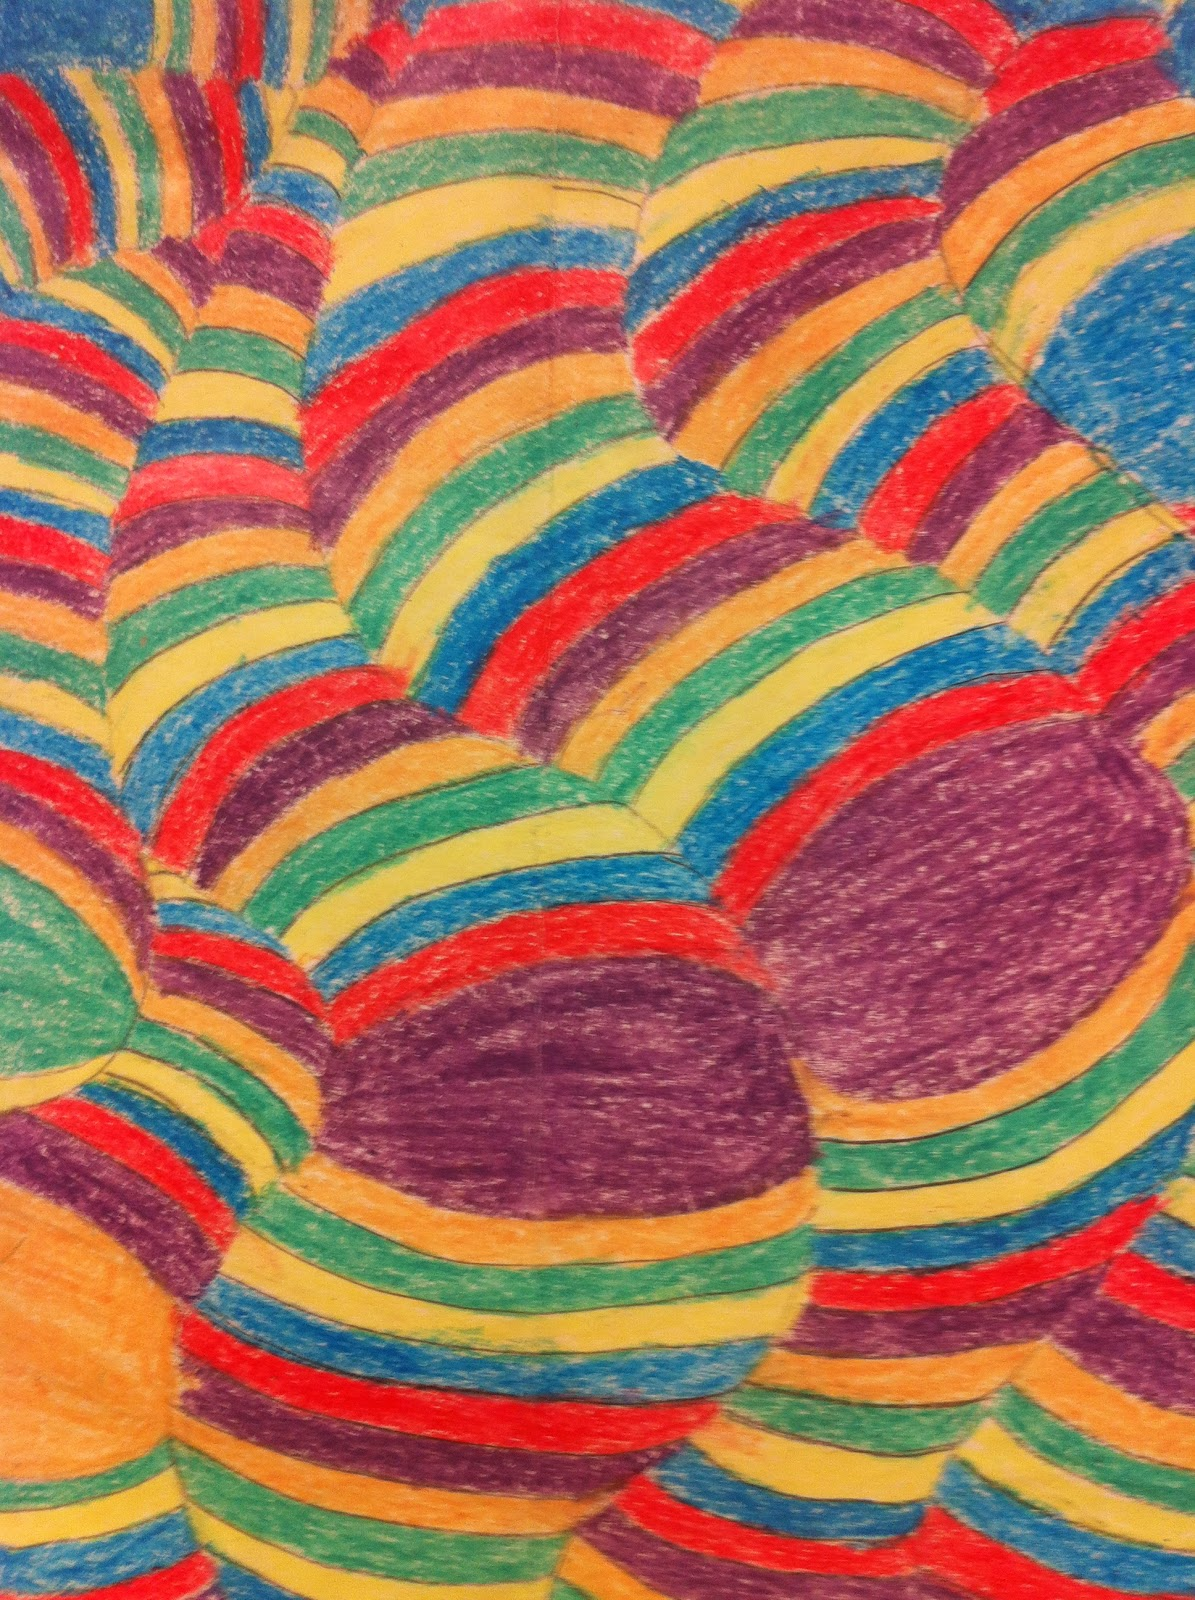 Op art uses color to create - Op Art Project Three Students Created Designs Then Colored With 3 5 Colors They Used Pattern In Their Color Choices And Were Encouraged To Use Shading